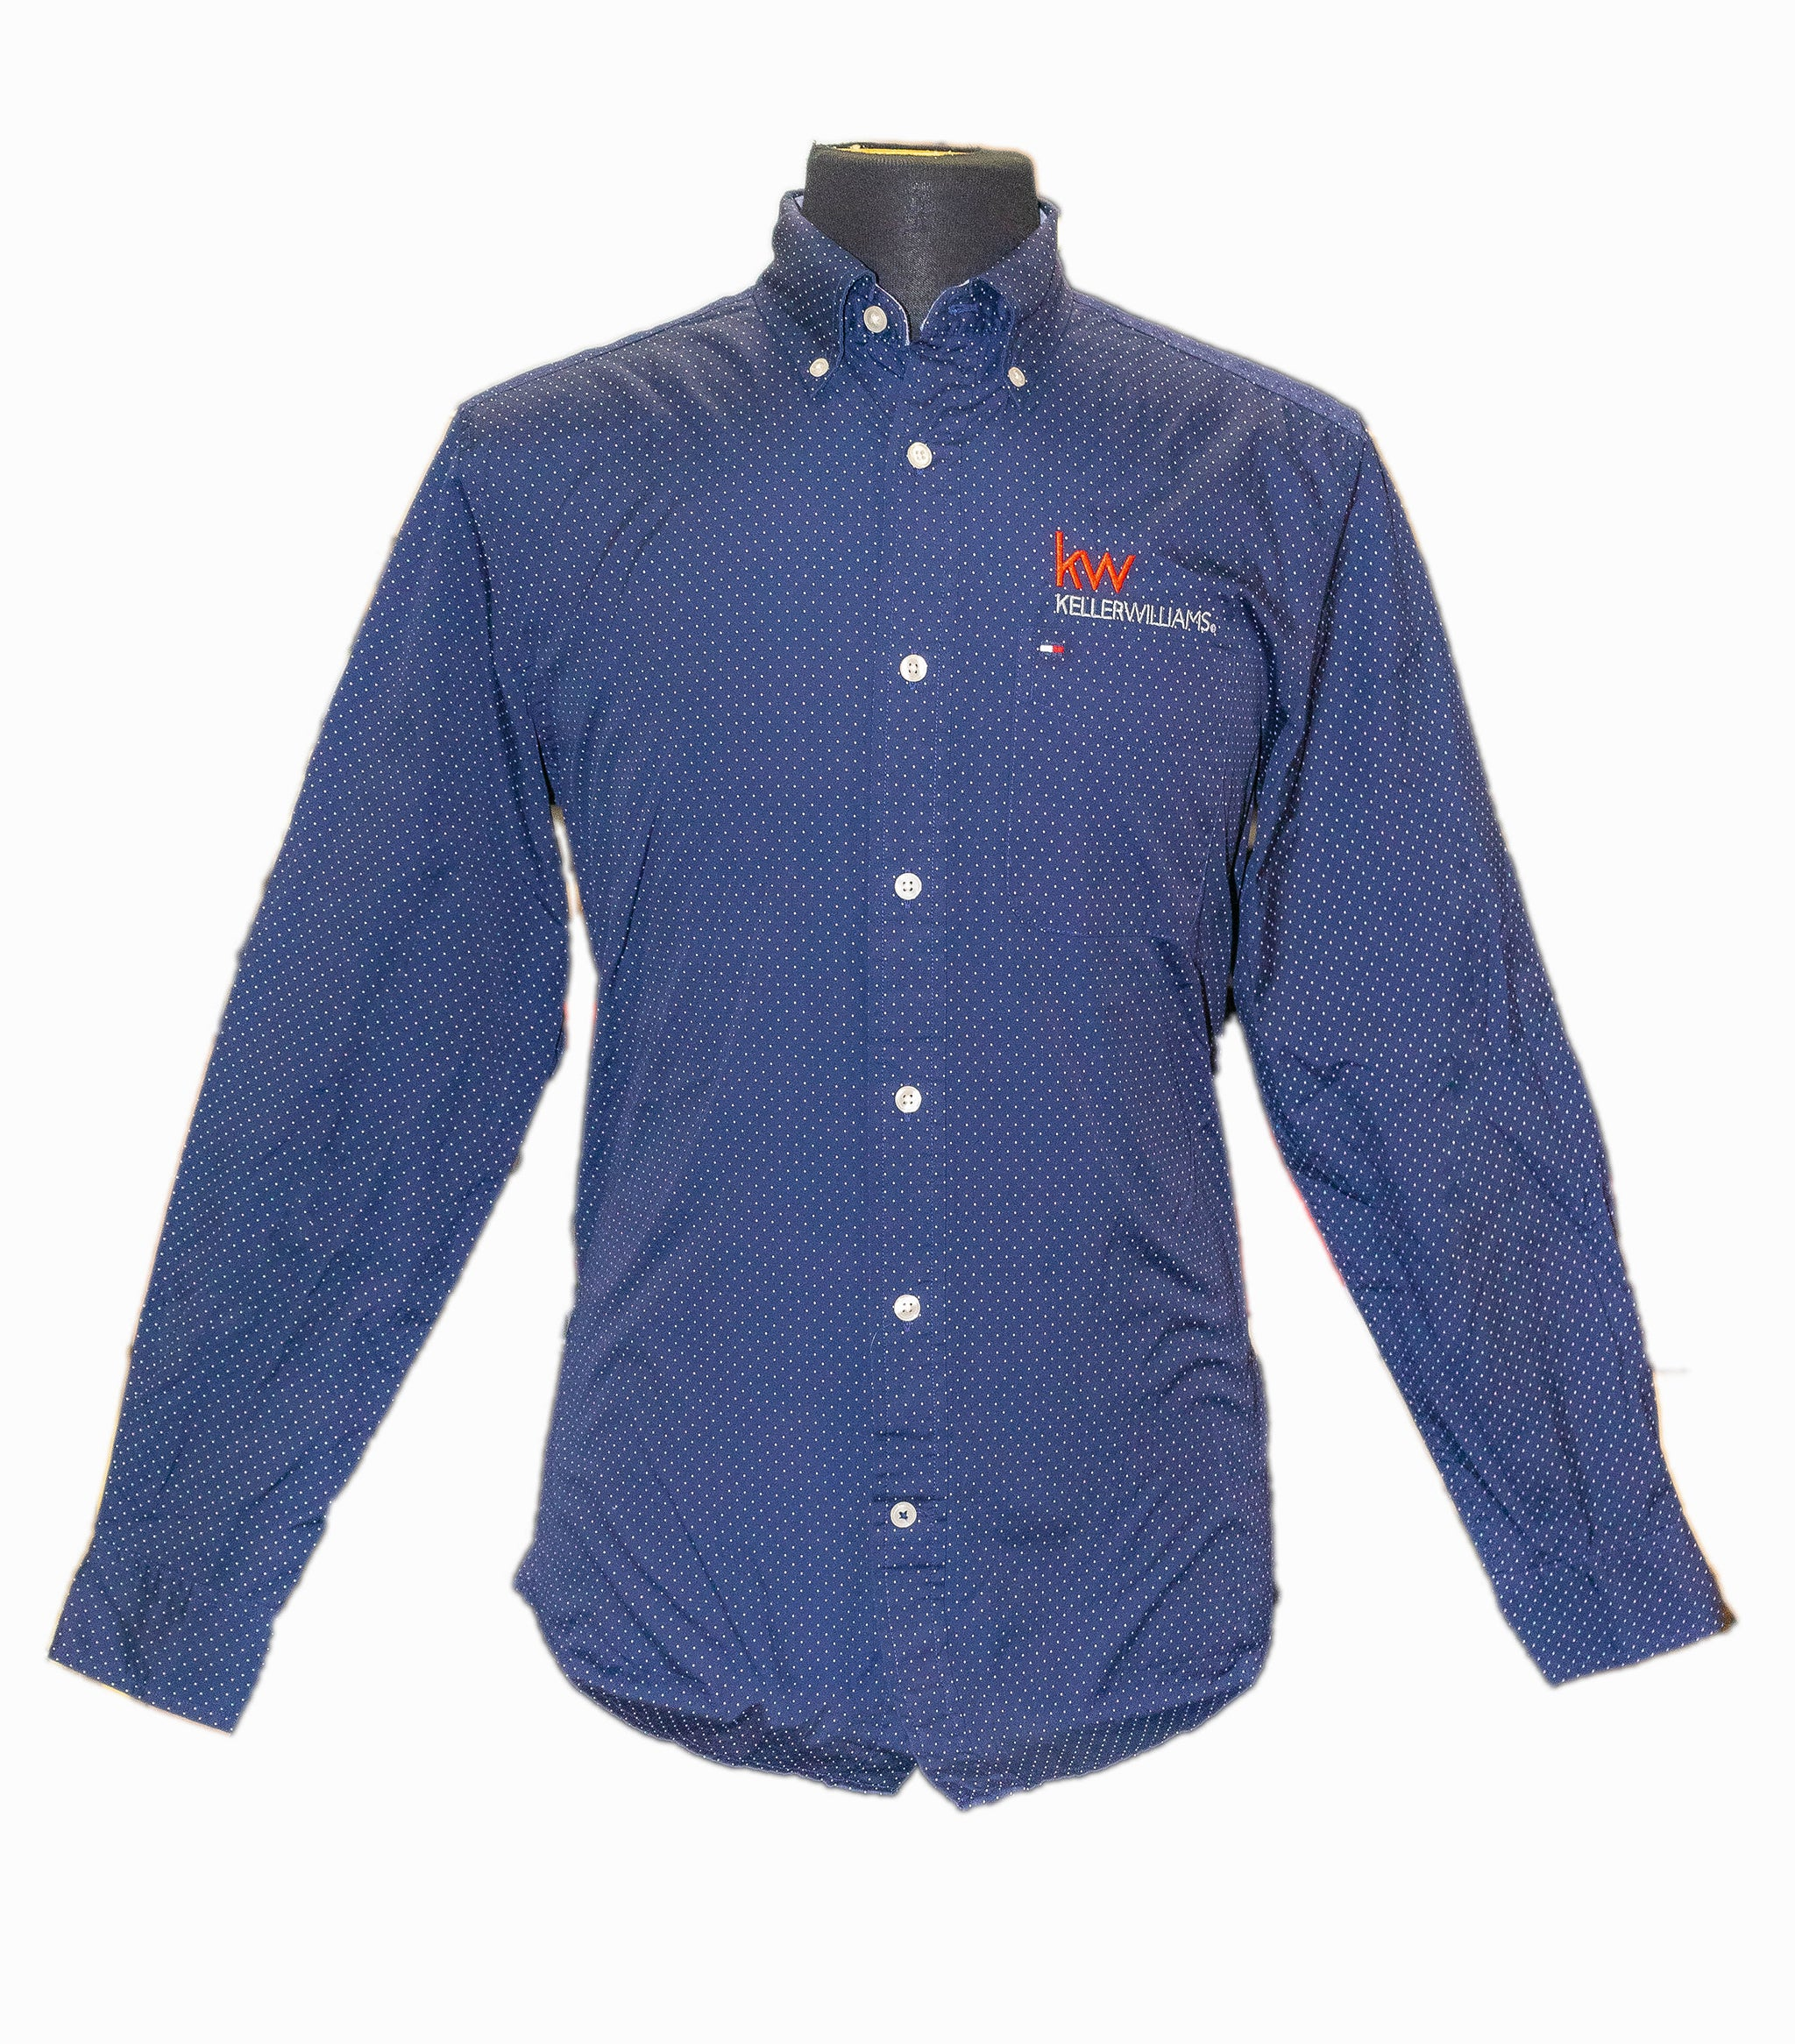 long sleeve button up shirt with polka dots and Keller Williams logo in embroidery